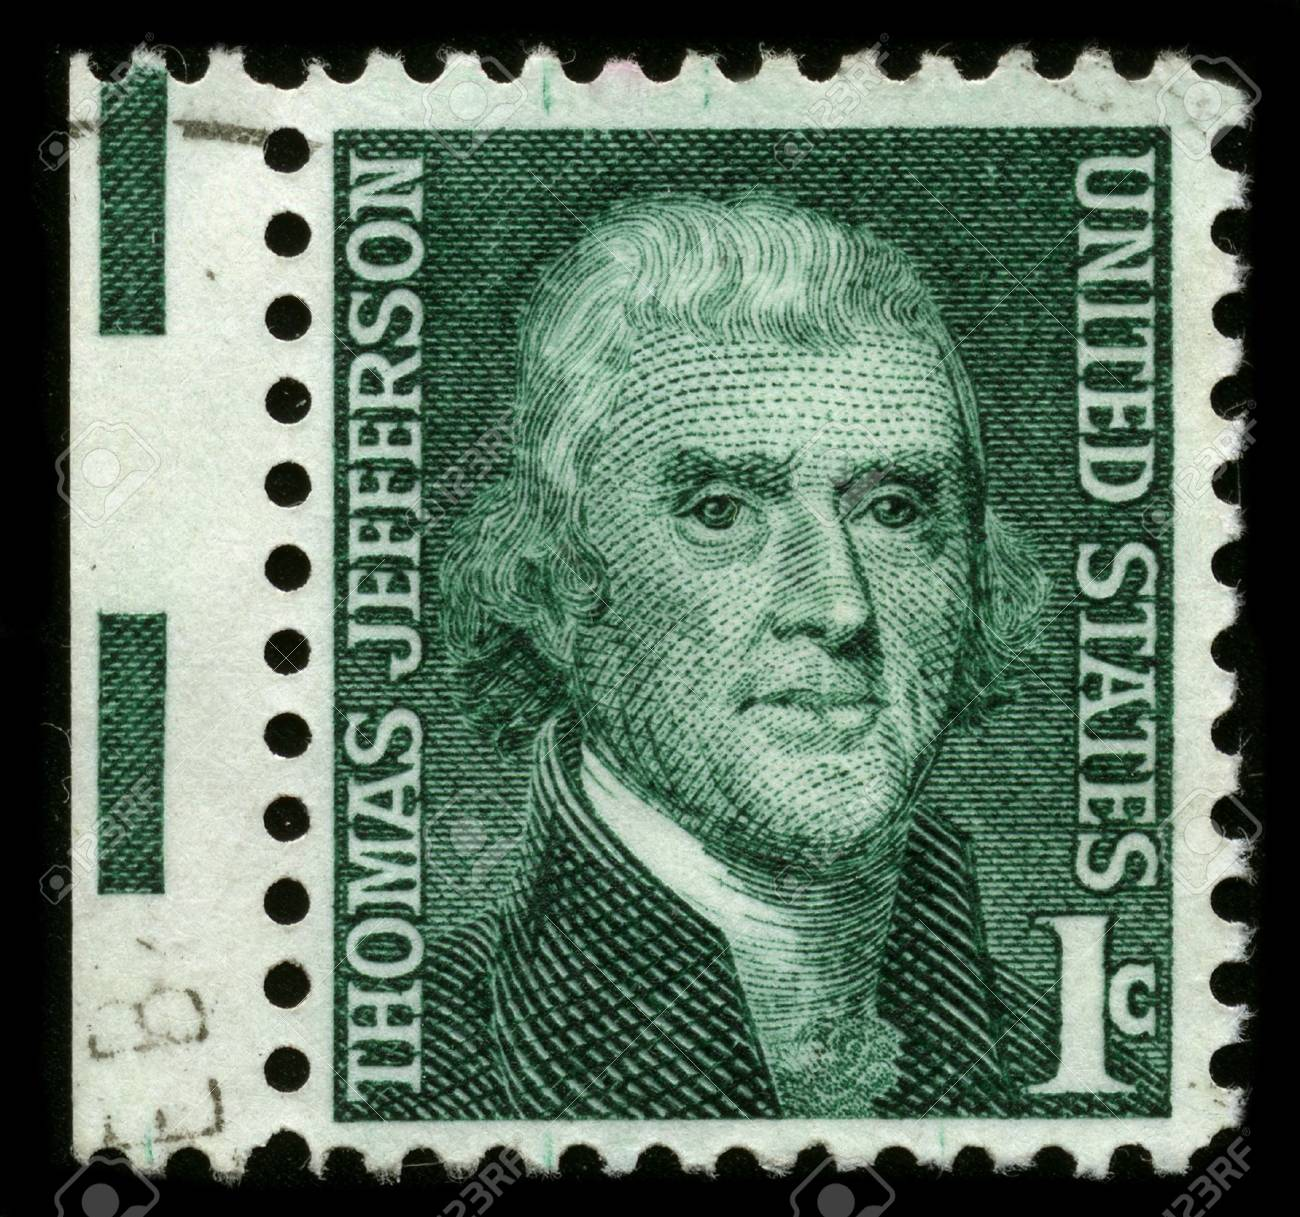 USA - CIRCA 1930: A stamp printed in USA shows image portrait Thomas Jefferson (April 13, 1743 � July 4, 1826) was the third President of the United States (1801�1809), circa 1930. Stock Photo - 7840463